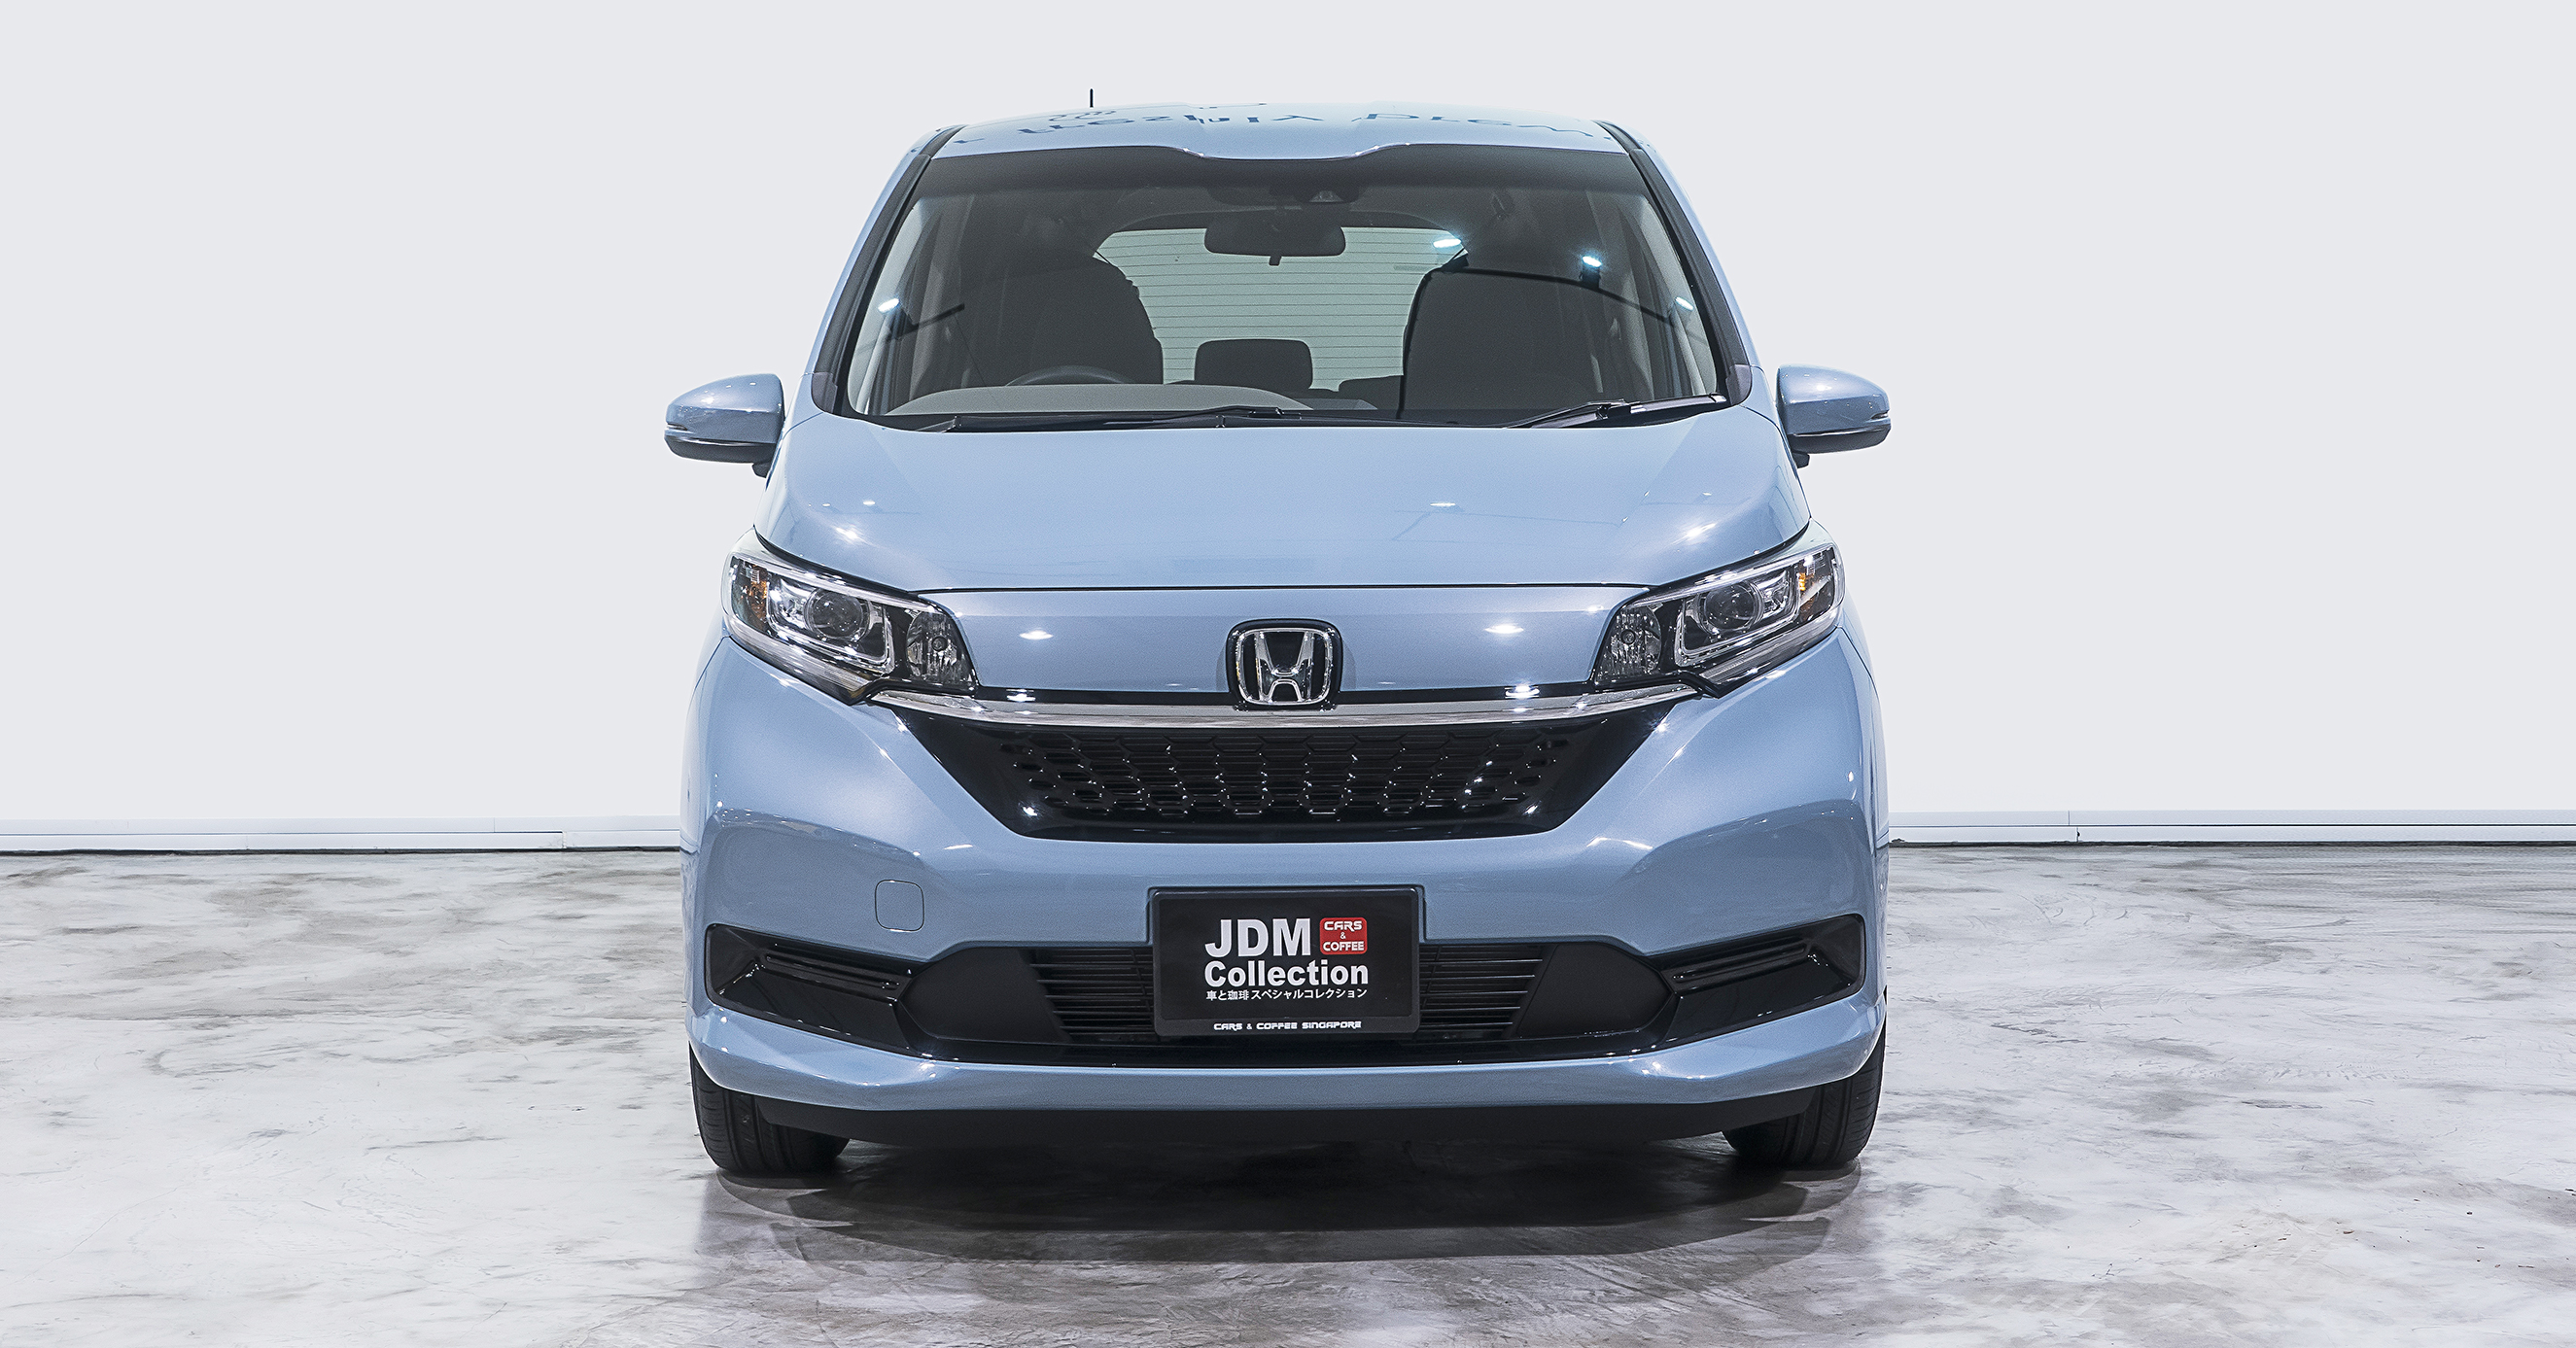 The New Honda Freed is completely redesigned with new ultra modern styling. It's the perfect family minivan for everyday's use.